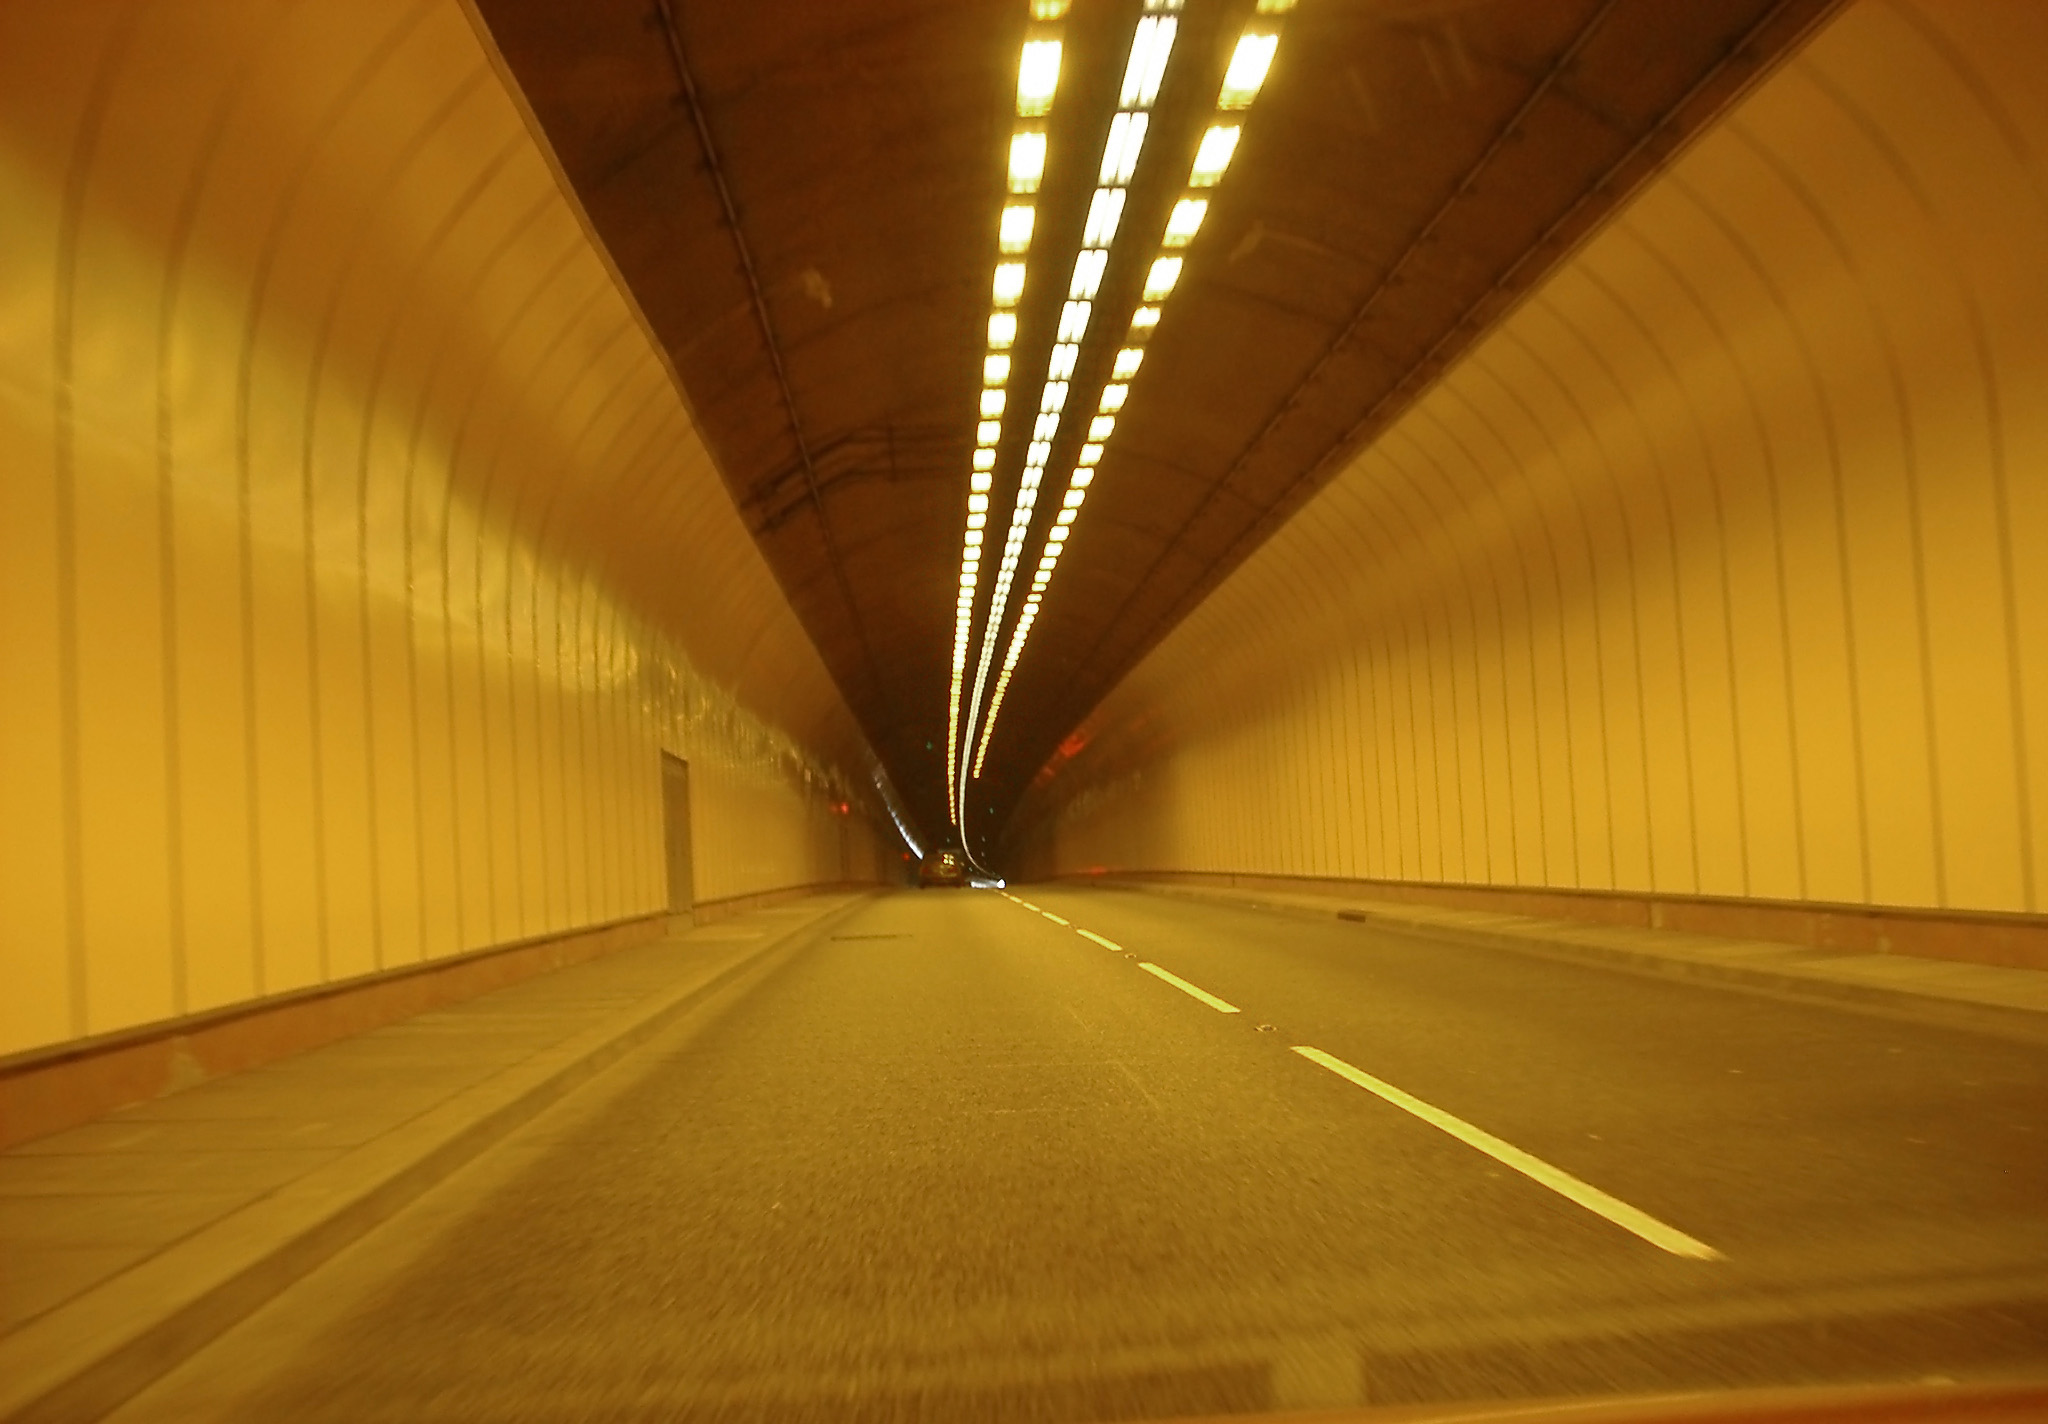 Road Level View of Road Tunnel with Yellow Lighting